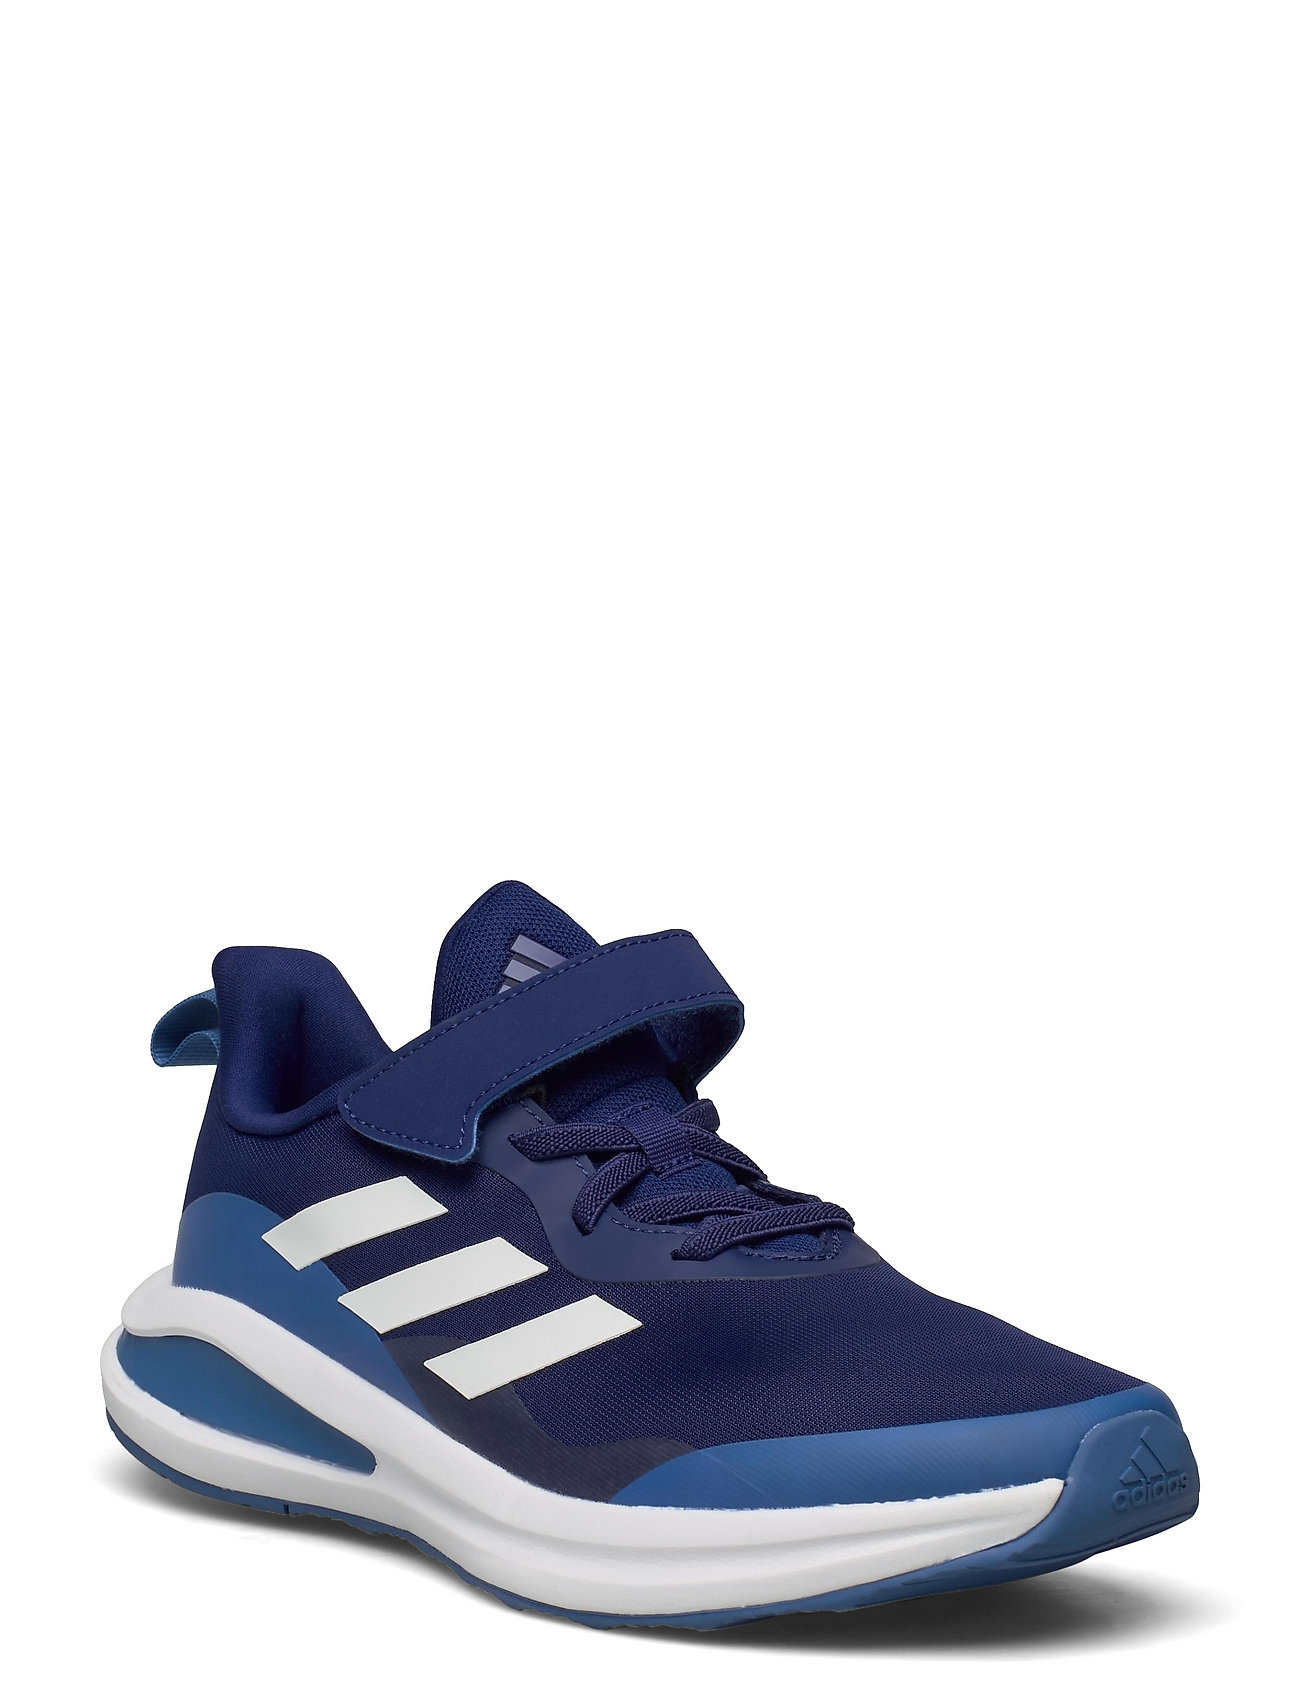 Fortarun Elastic Lace Top Strap Running Shoes Sports Shoes Running/training Shoes Blå Adidas Performance